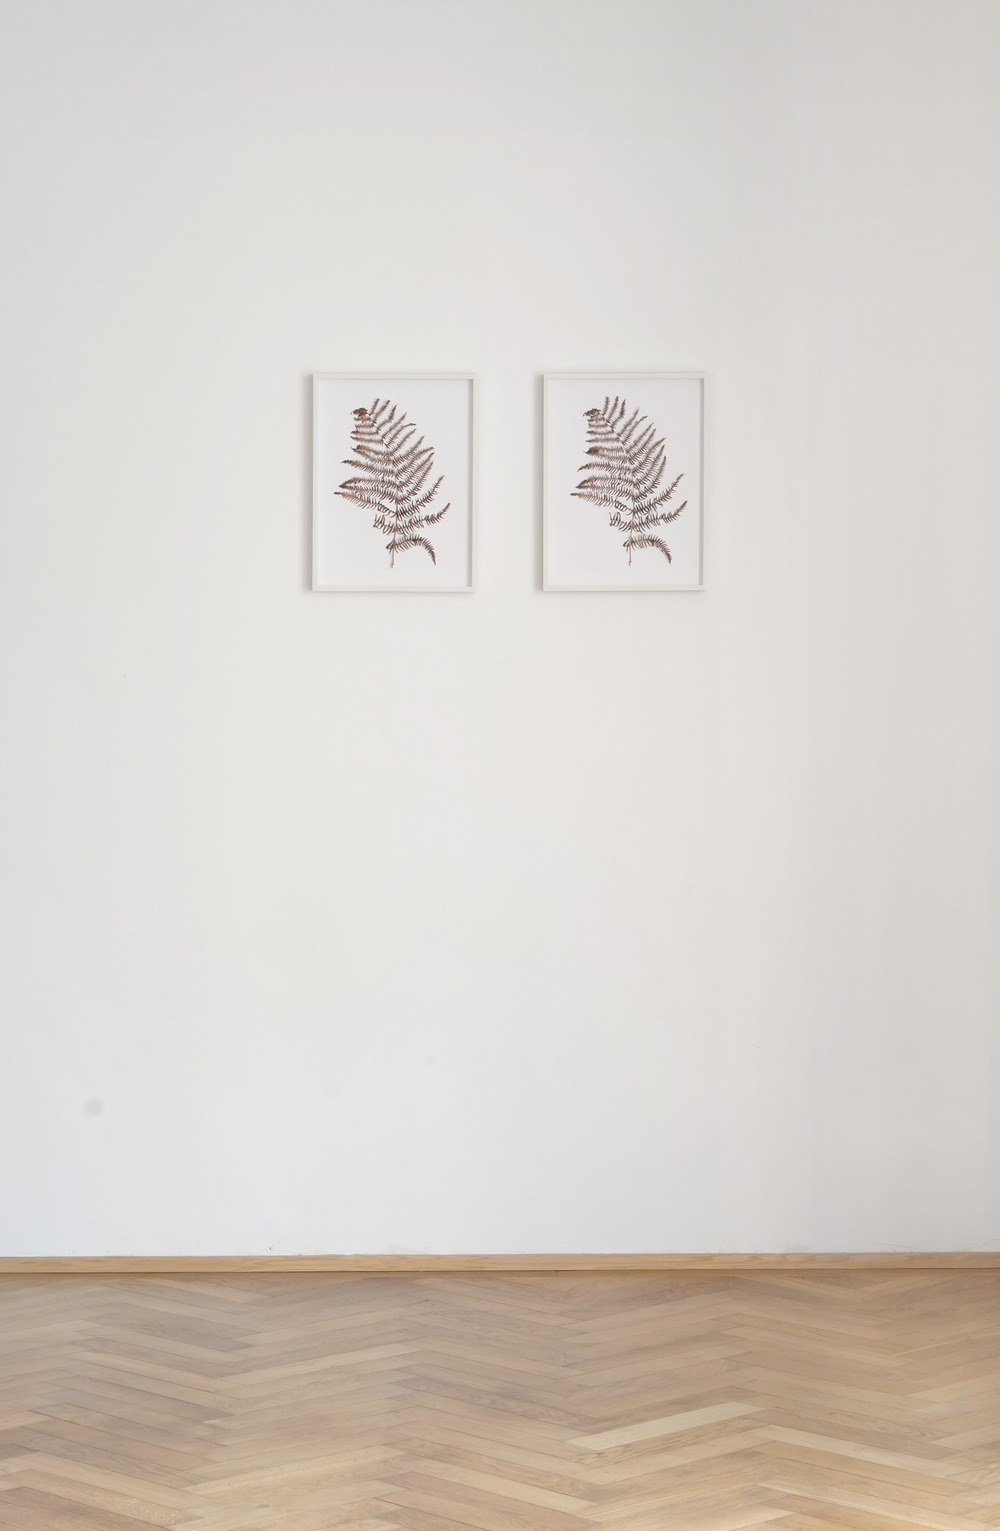 Alex Grein, Farnblatt (two parts), 2015, Cutout InkJet Print, 30 x 40 cm each